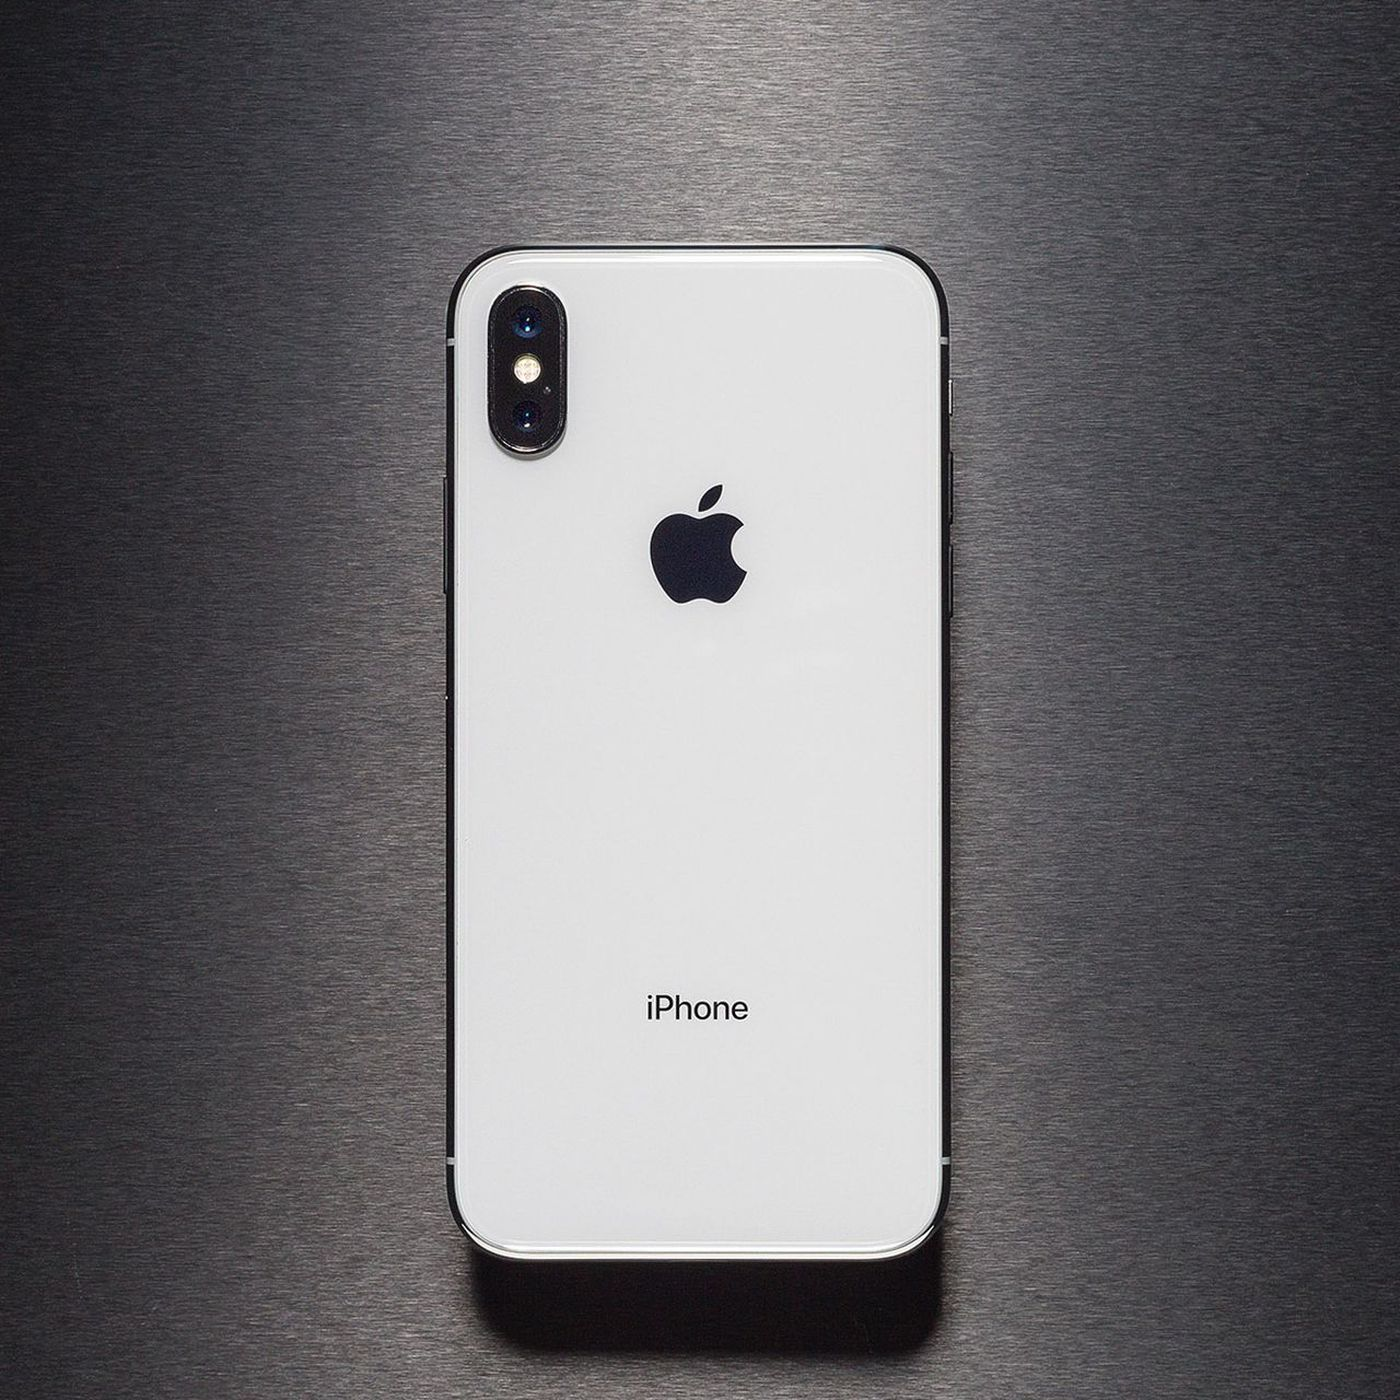 New 6 5 Inch Iphone X Model Reportedly Called The Xs Max Verge